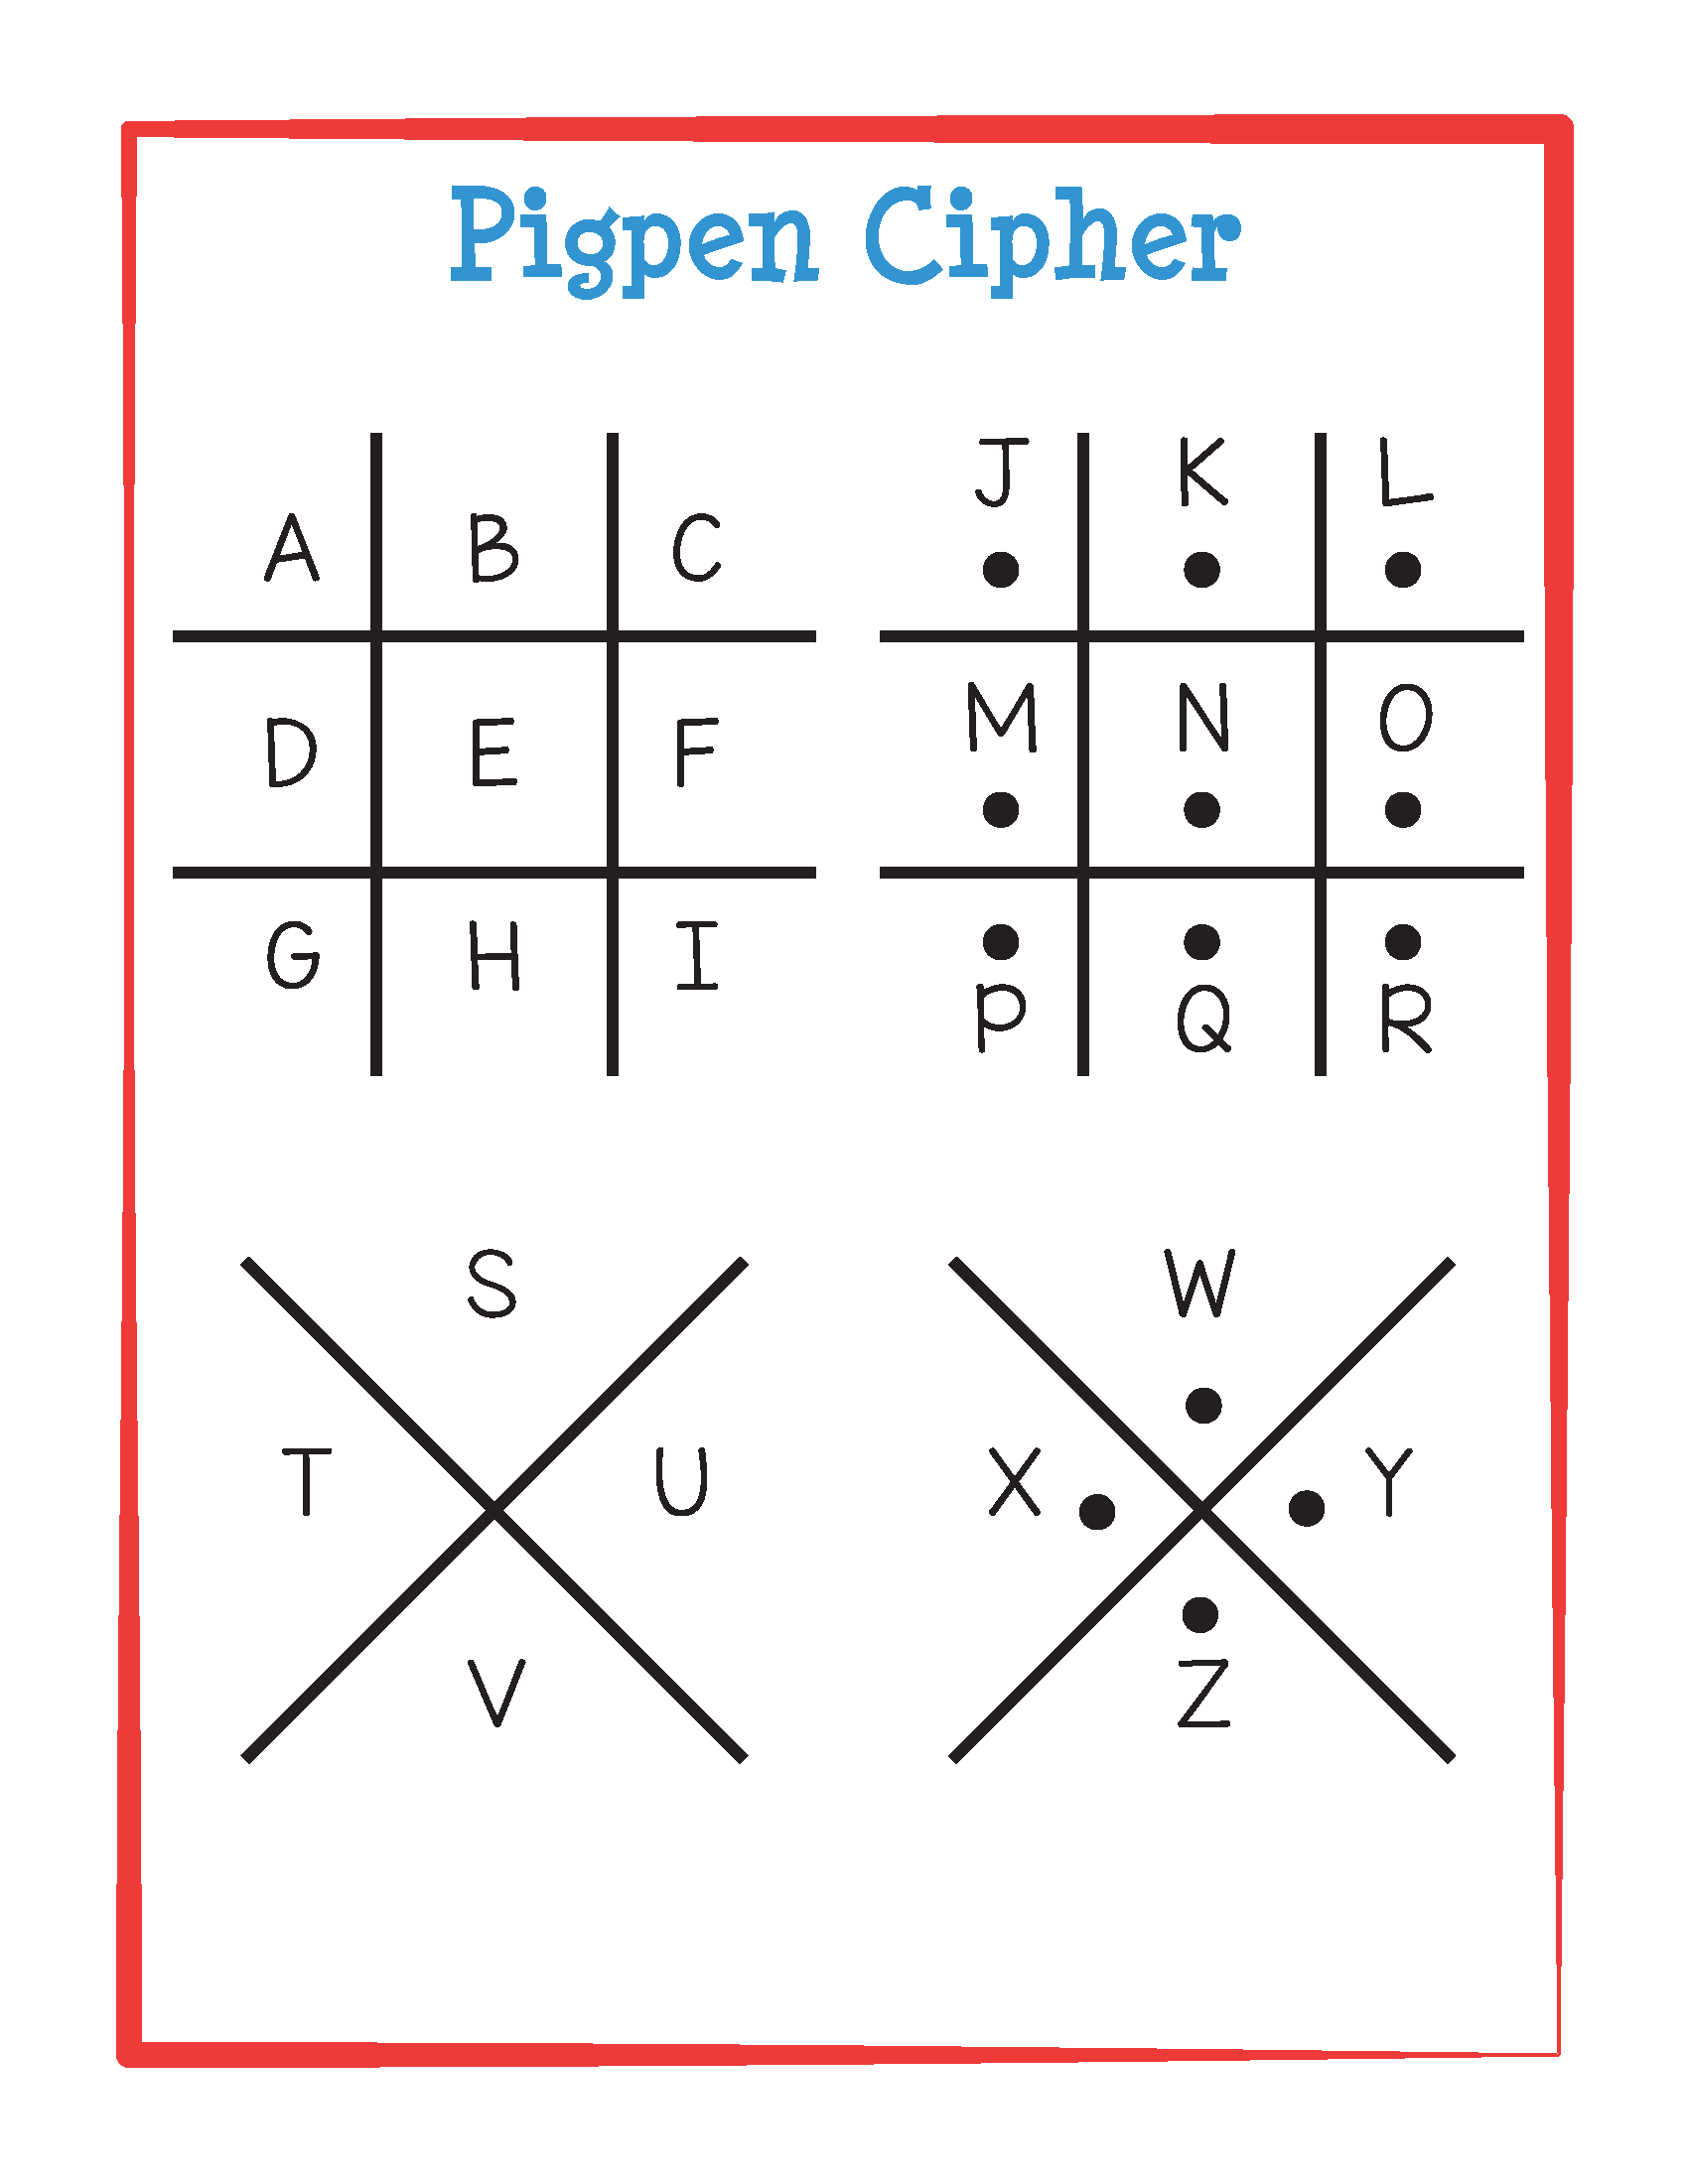 Fun With Pigpen Cipher In